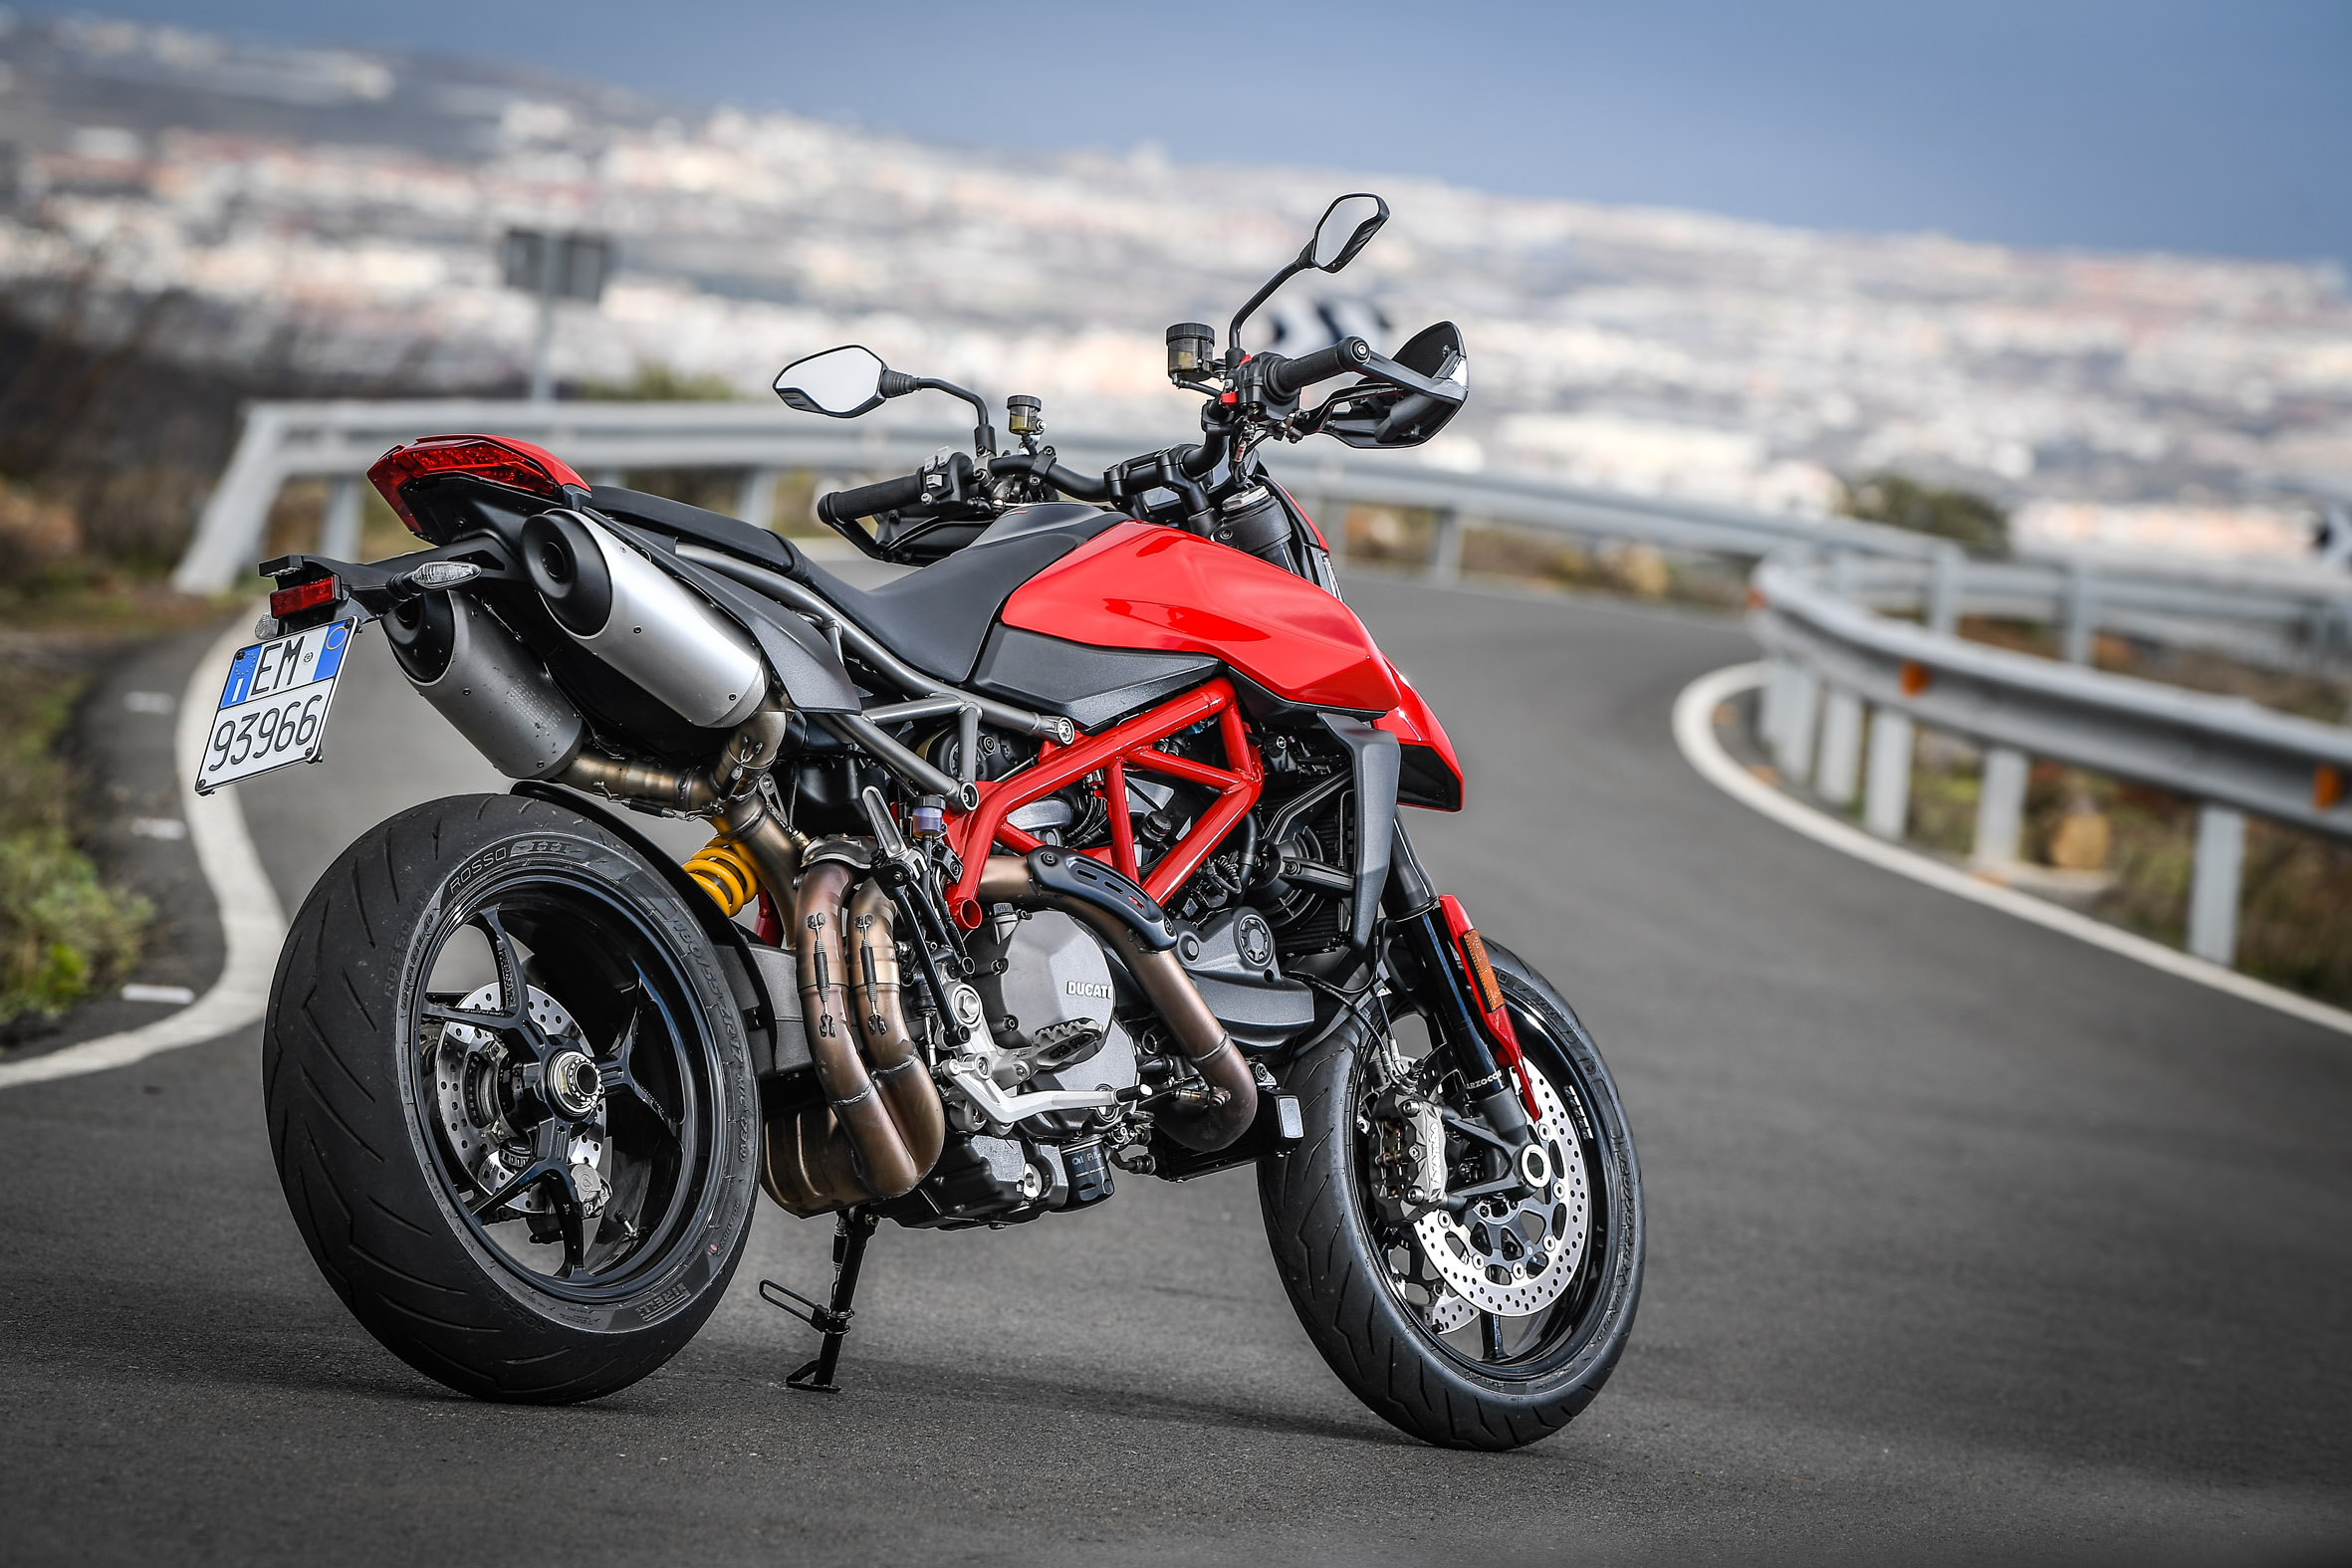 Hypermotard_950_Static 03_UC70265_Preview